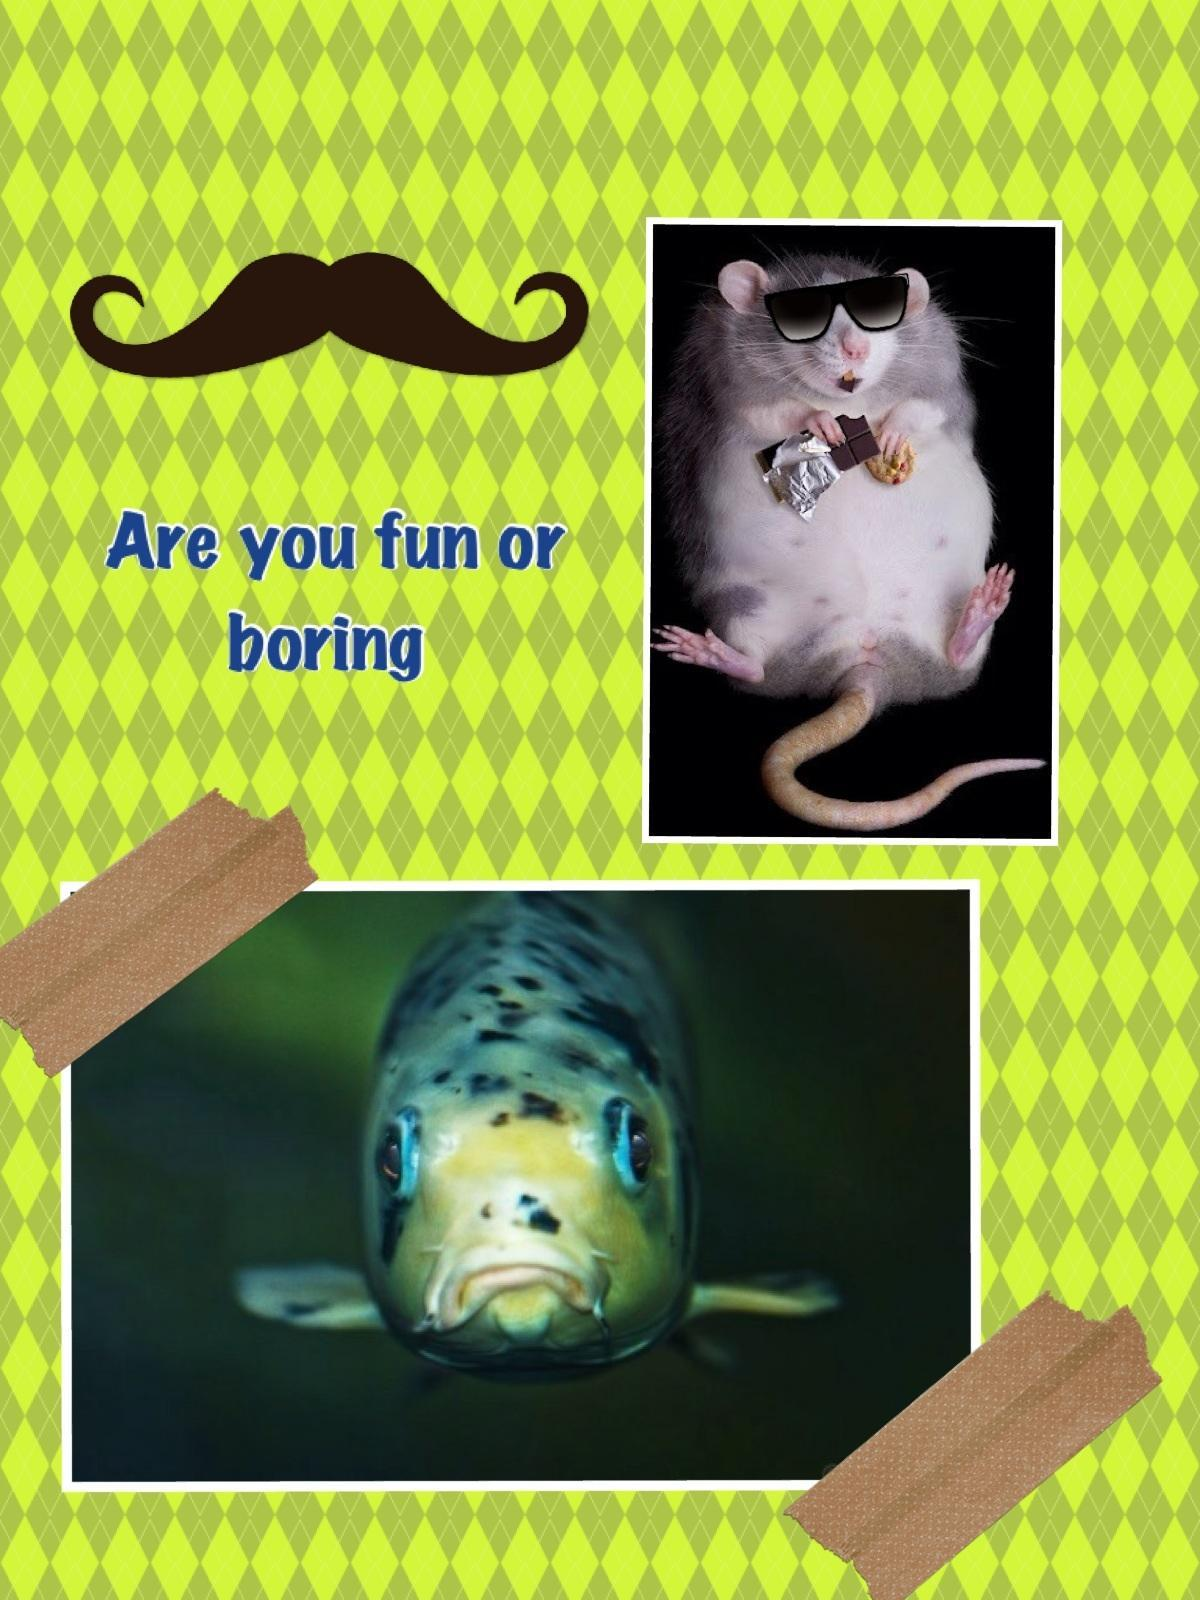 Are you fun or boring?